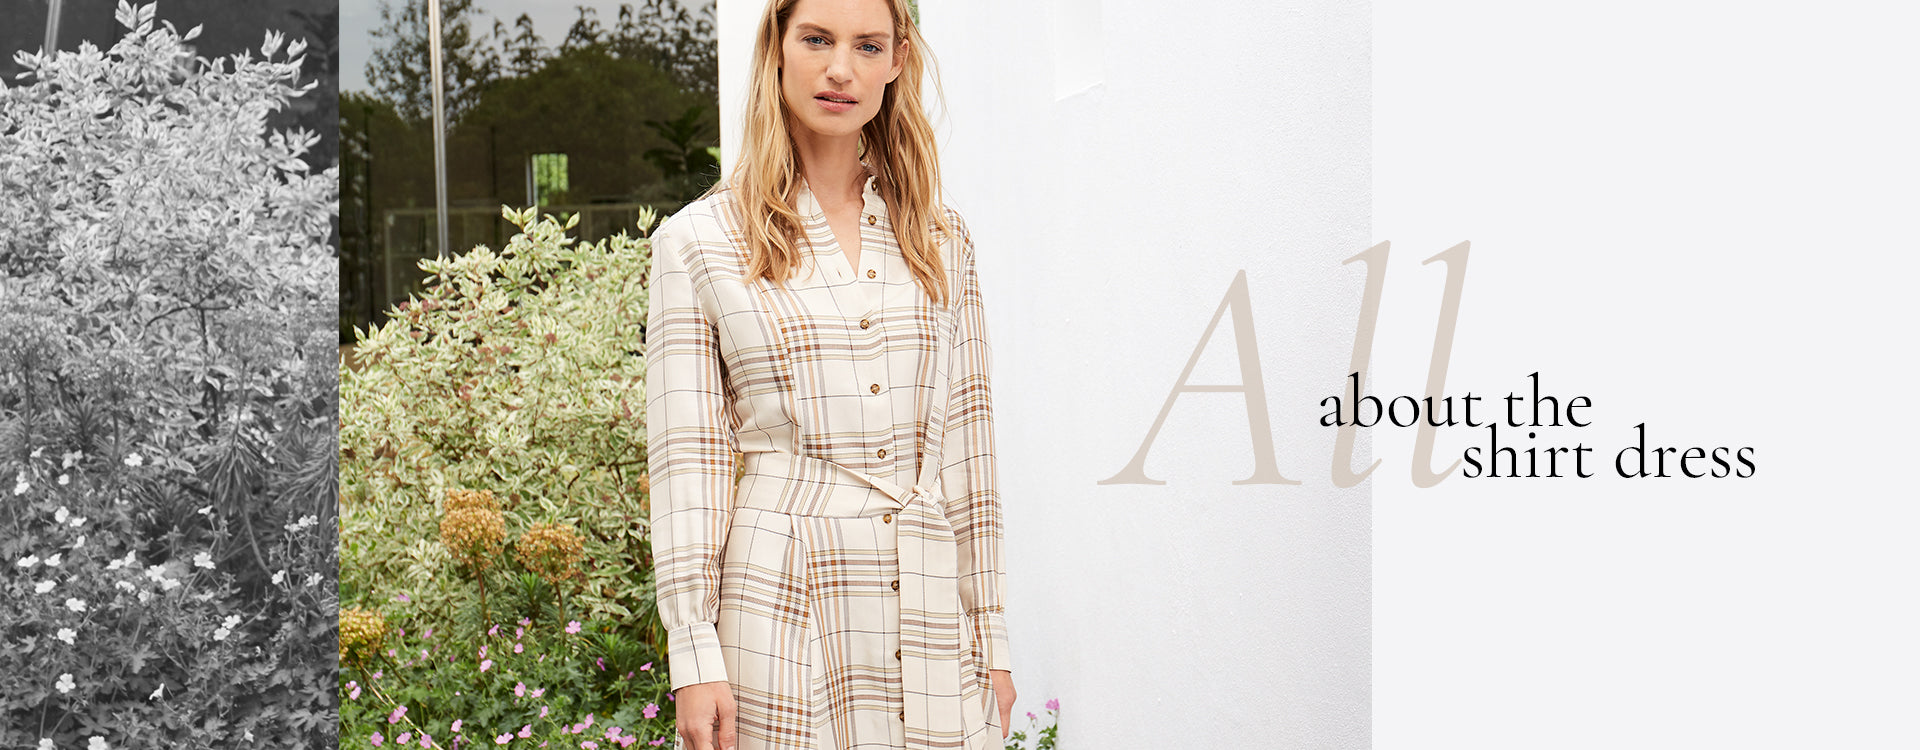 All about the shirtdress